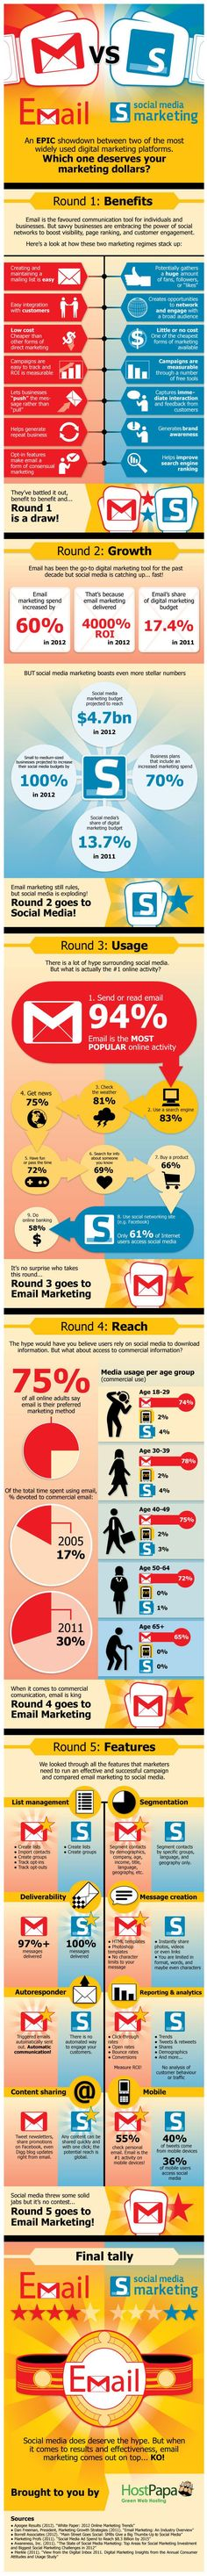 Which Is Better: Social Media or Email Marketing?